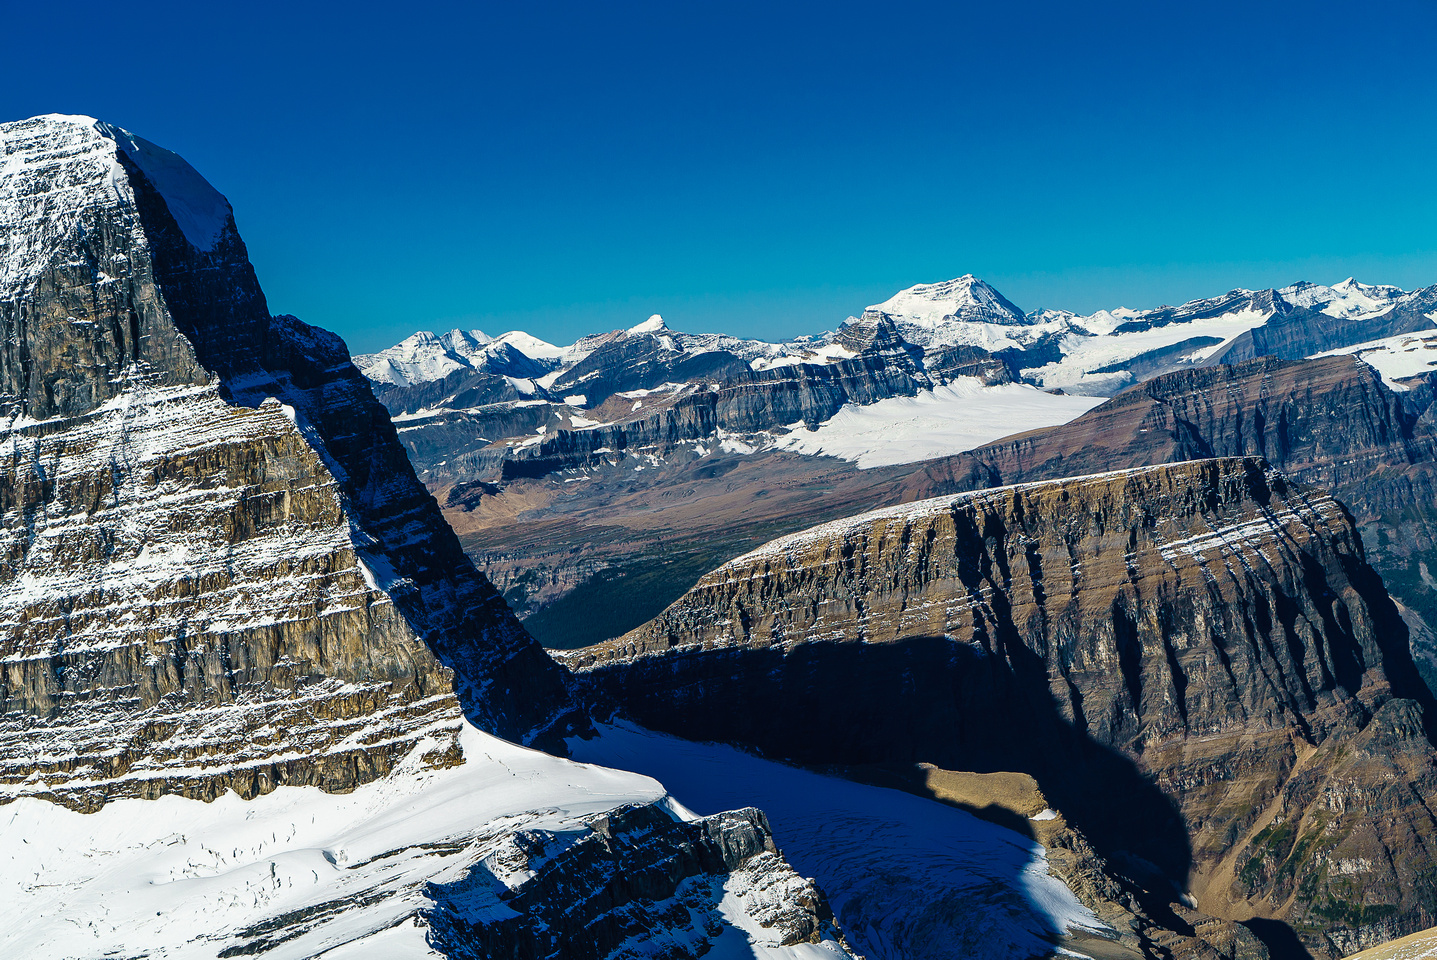 Impressive views past the NE ridge of Mount Alberta towards Mount Clemenceau.